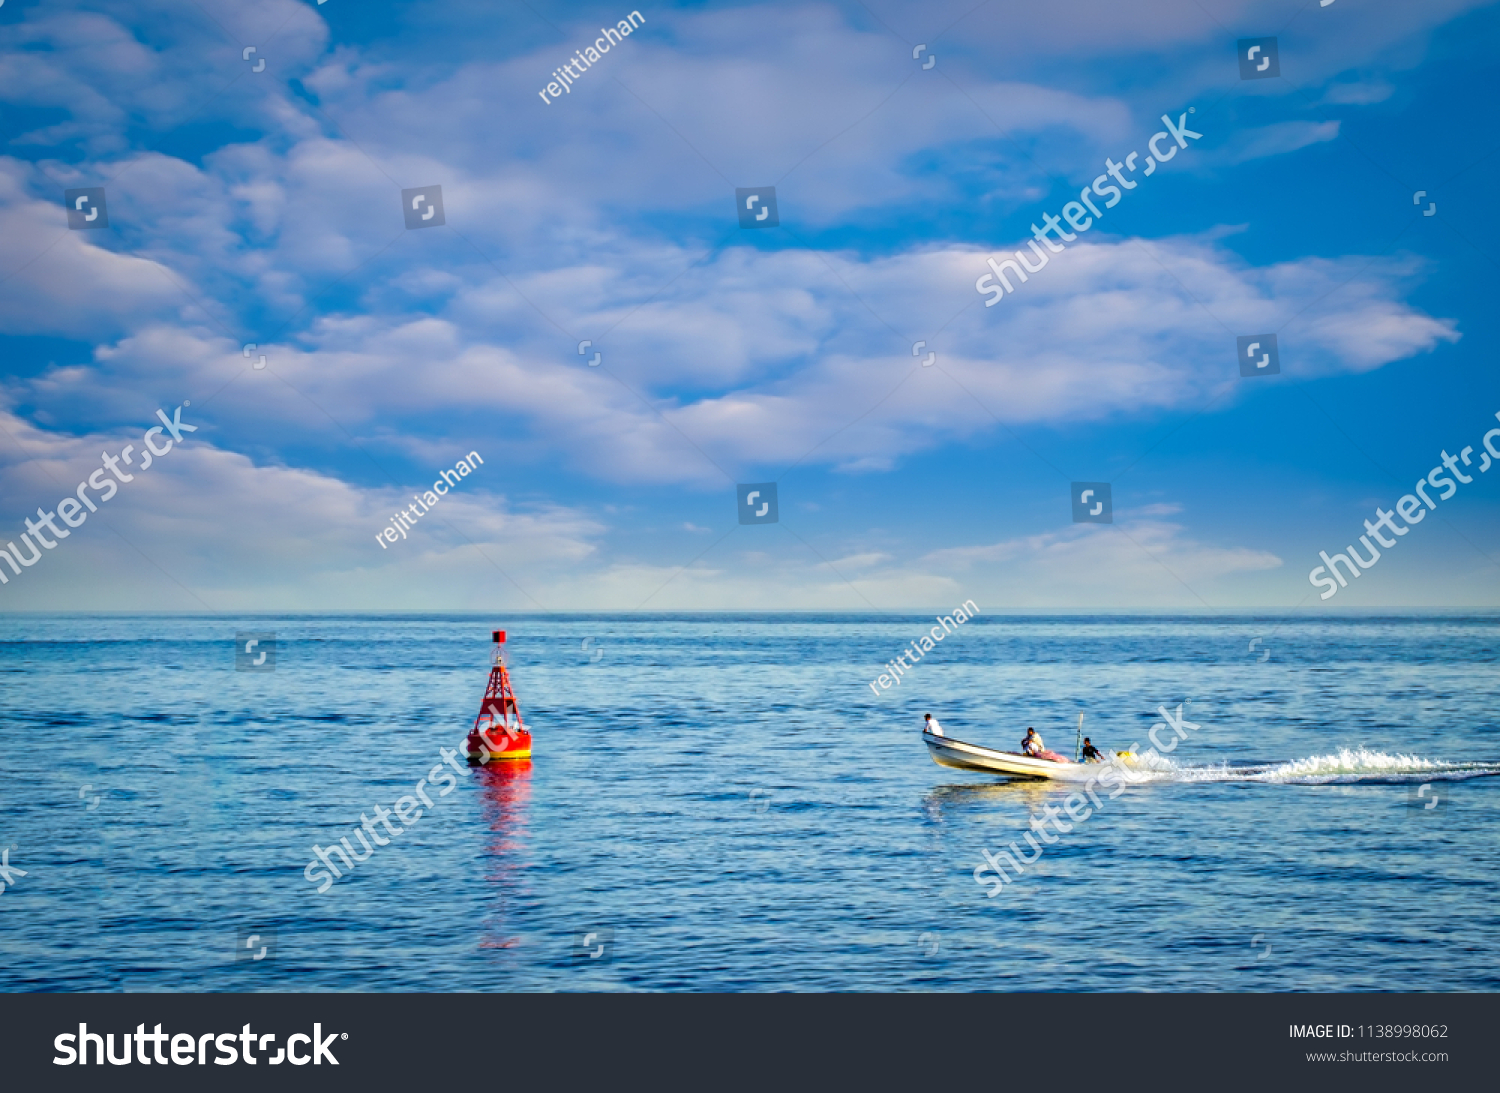 stock-photo-a-fast-fishing-boat-moving-t